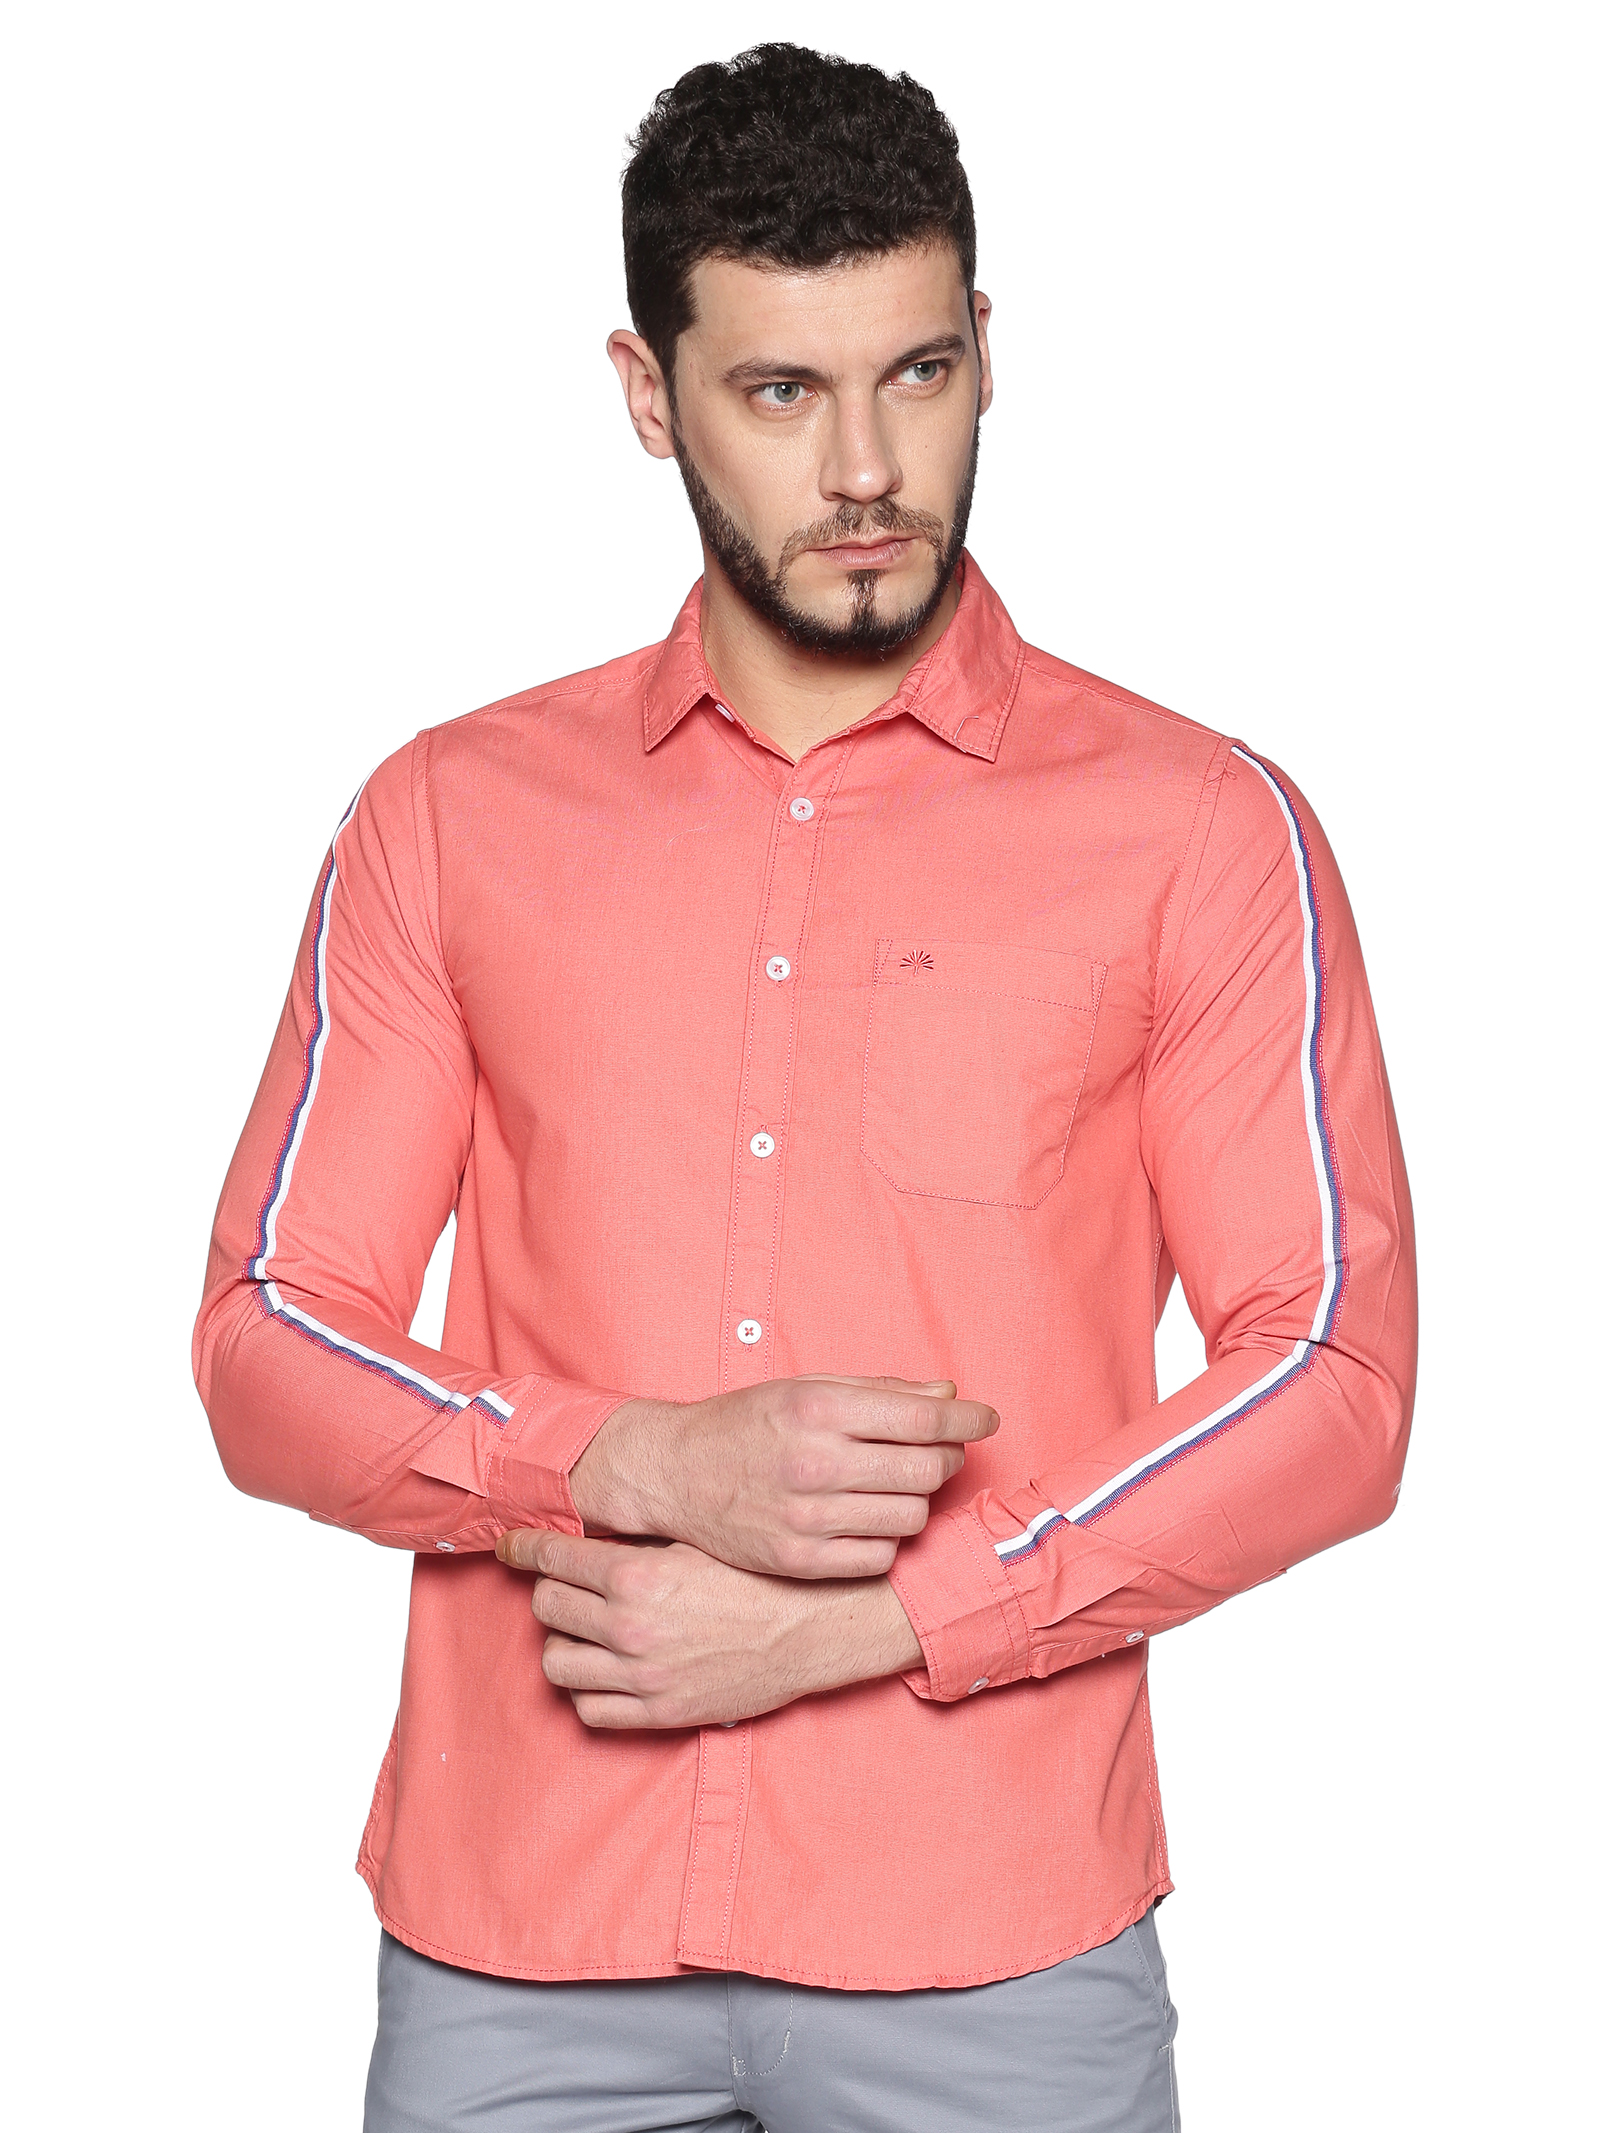 Chennis | Chennis Men's Coral Cotton Casual Shirt With Side Tape on Sleeves